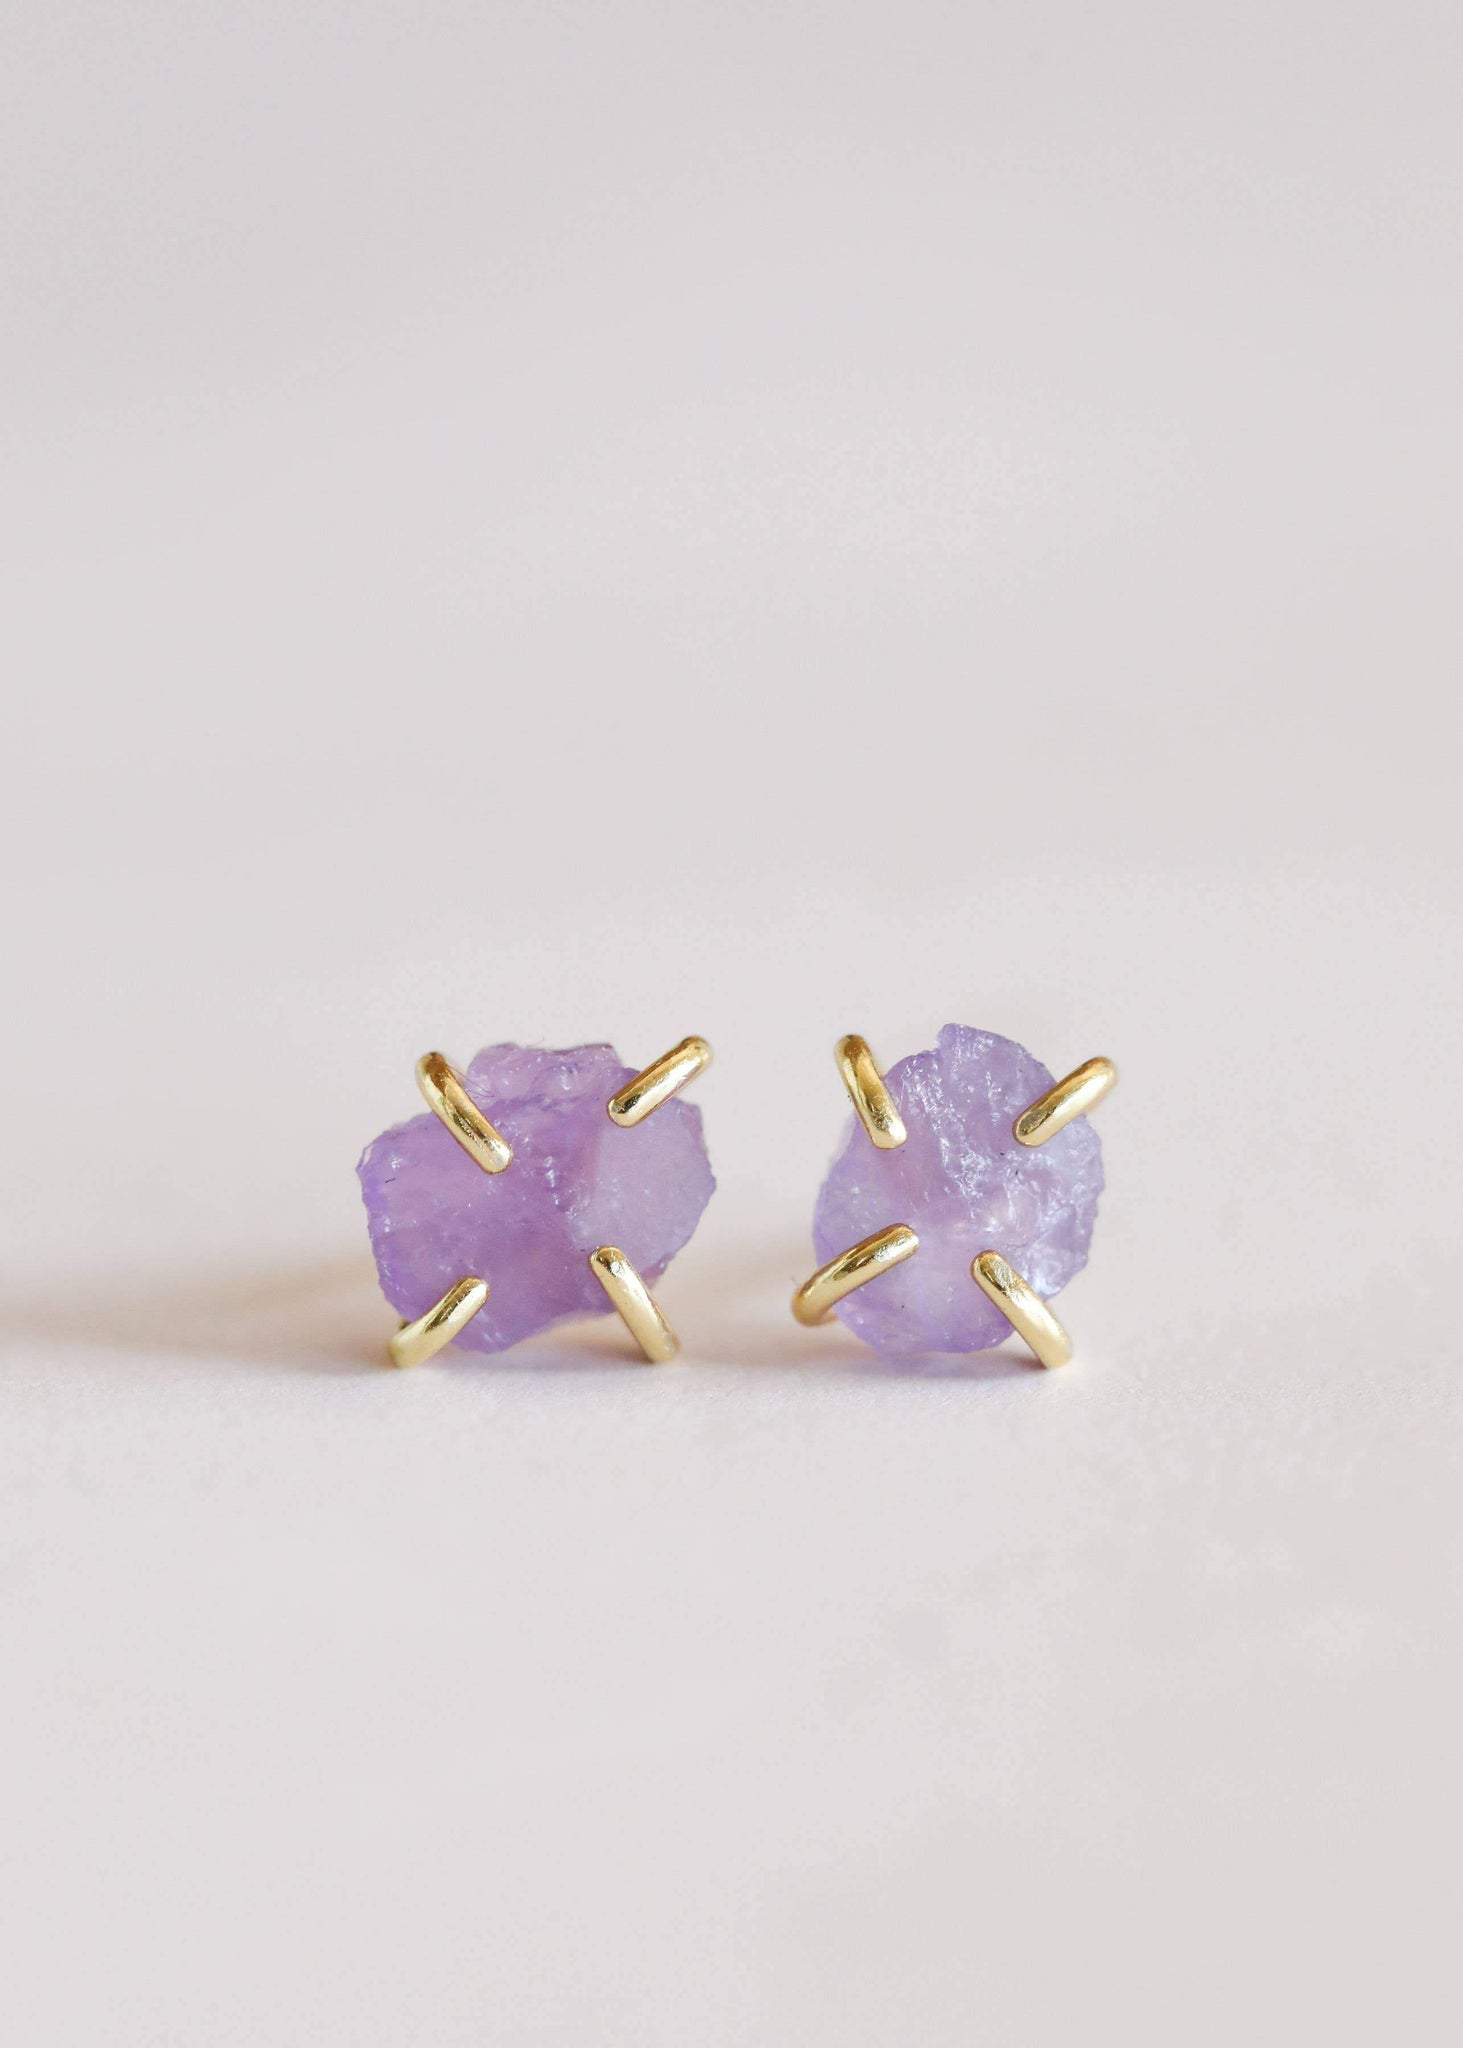 Amethyst Gemstone Prong Earrings - Rise and Redemption